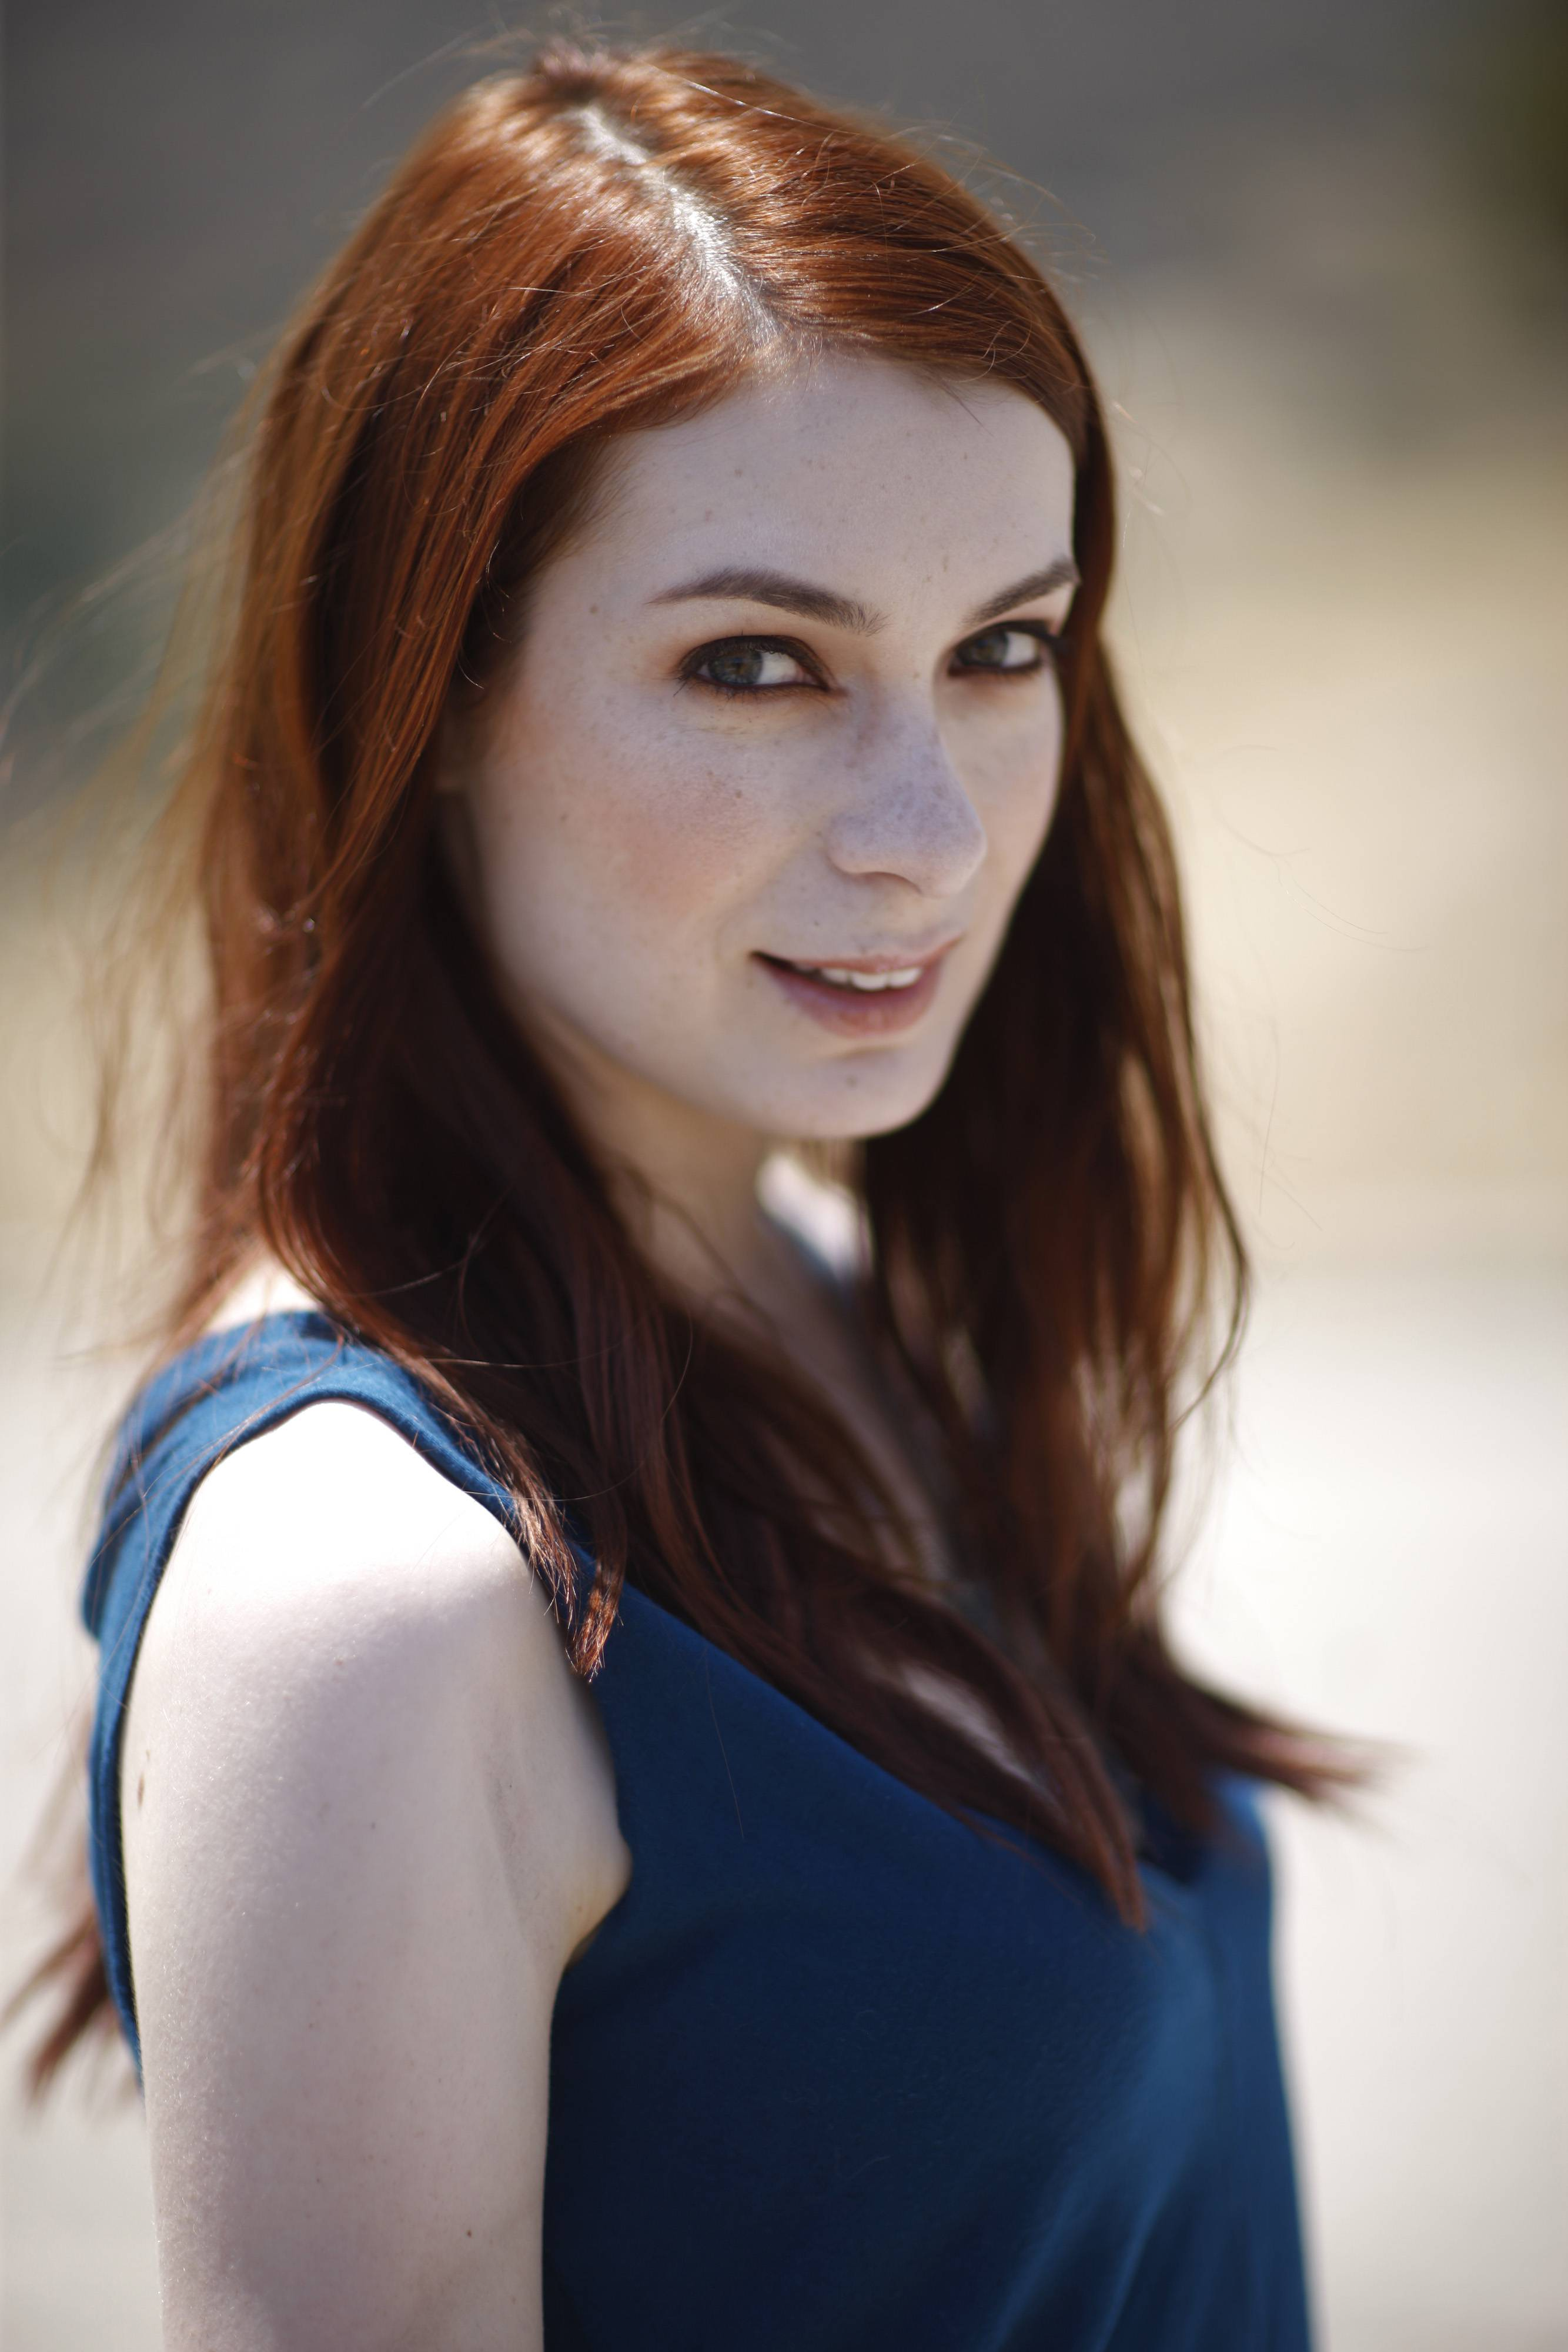 Images of Felicia Day | 2667x4000